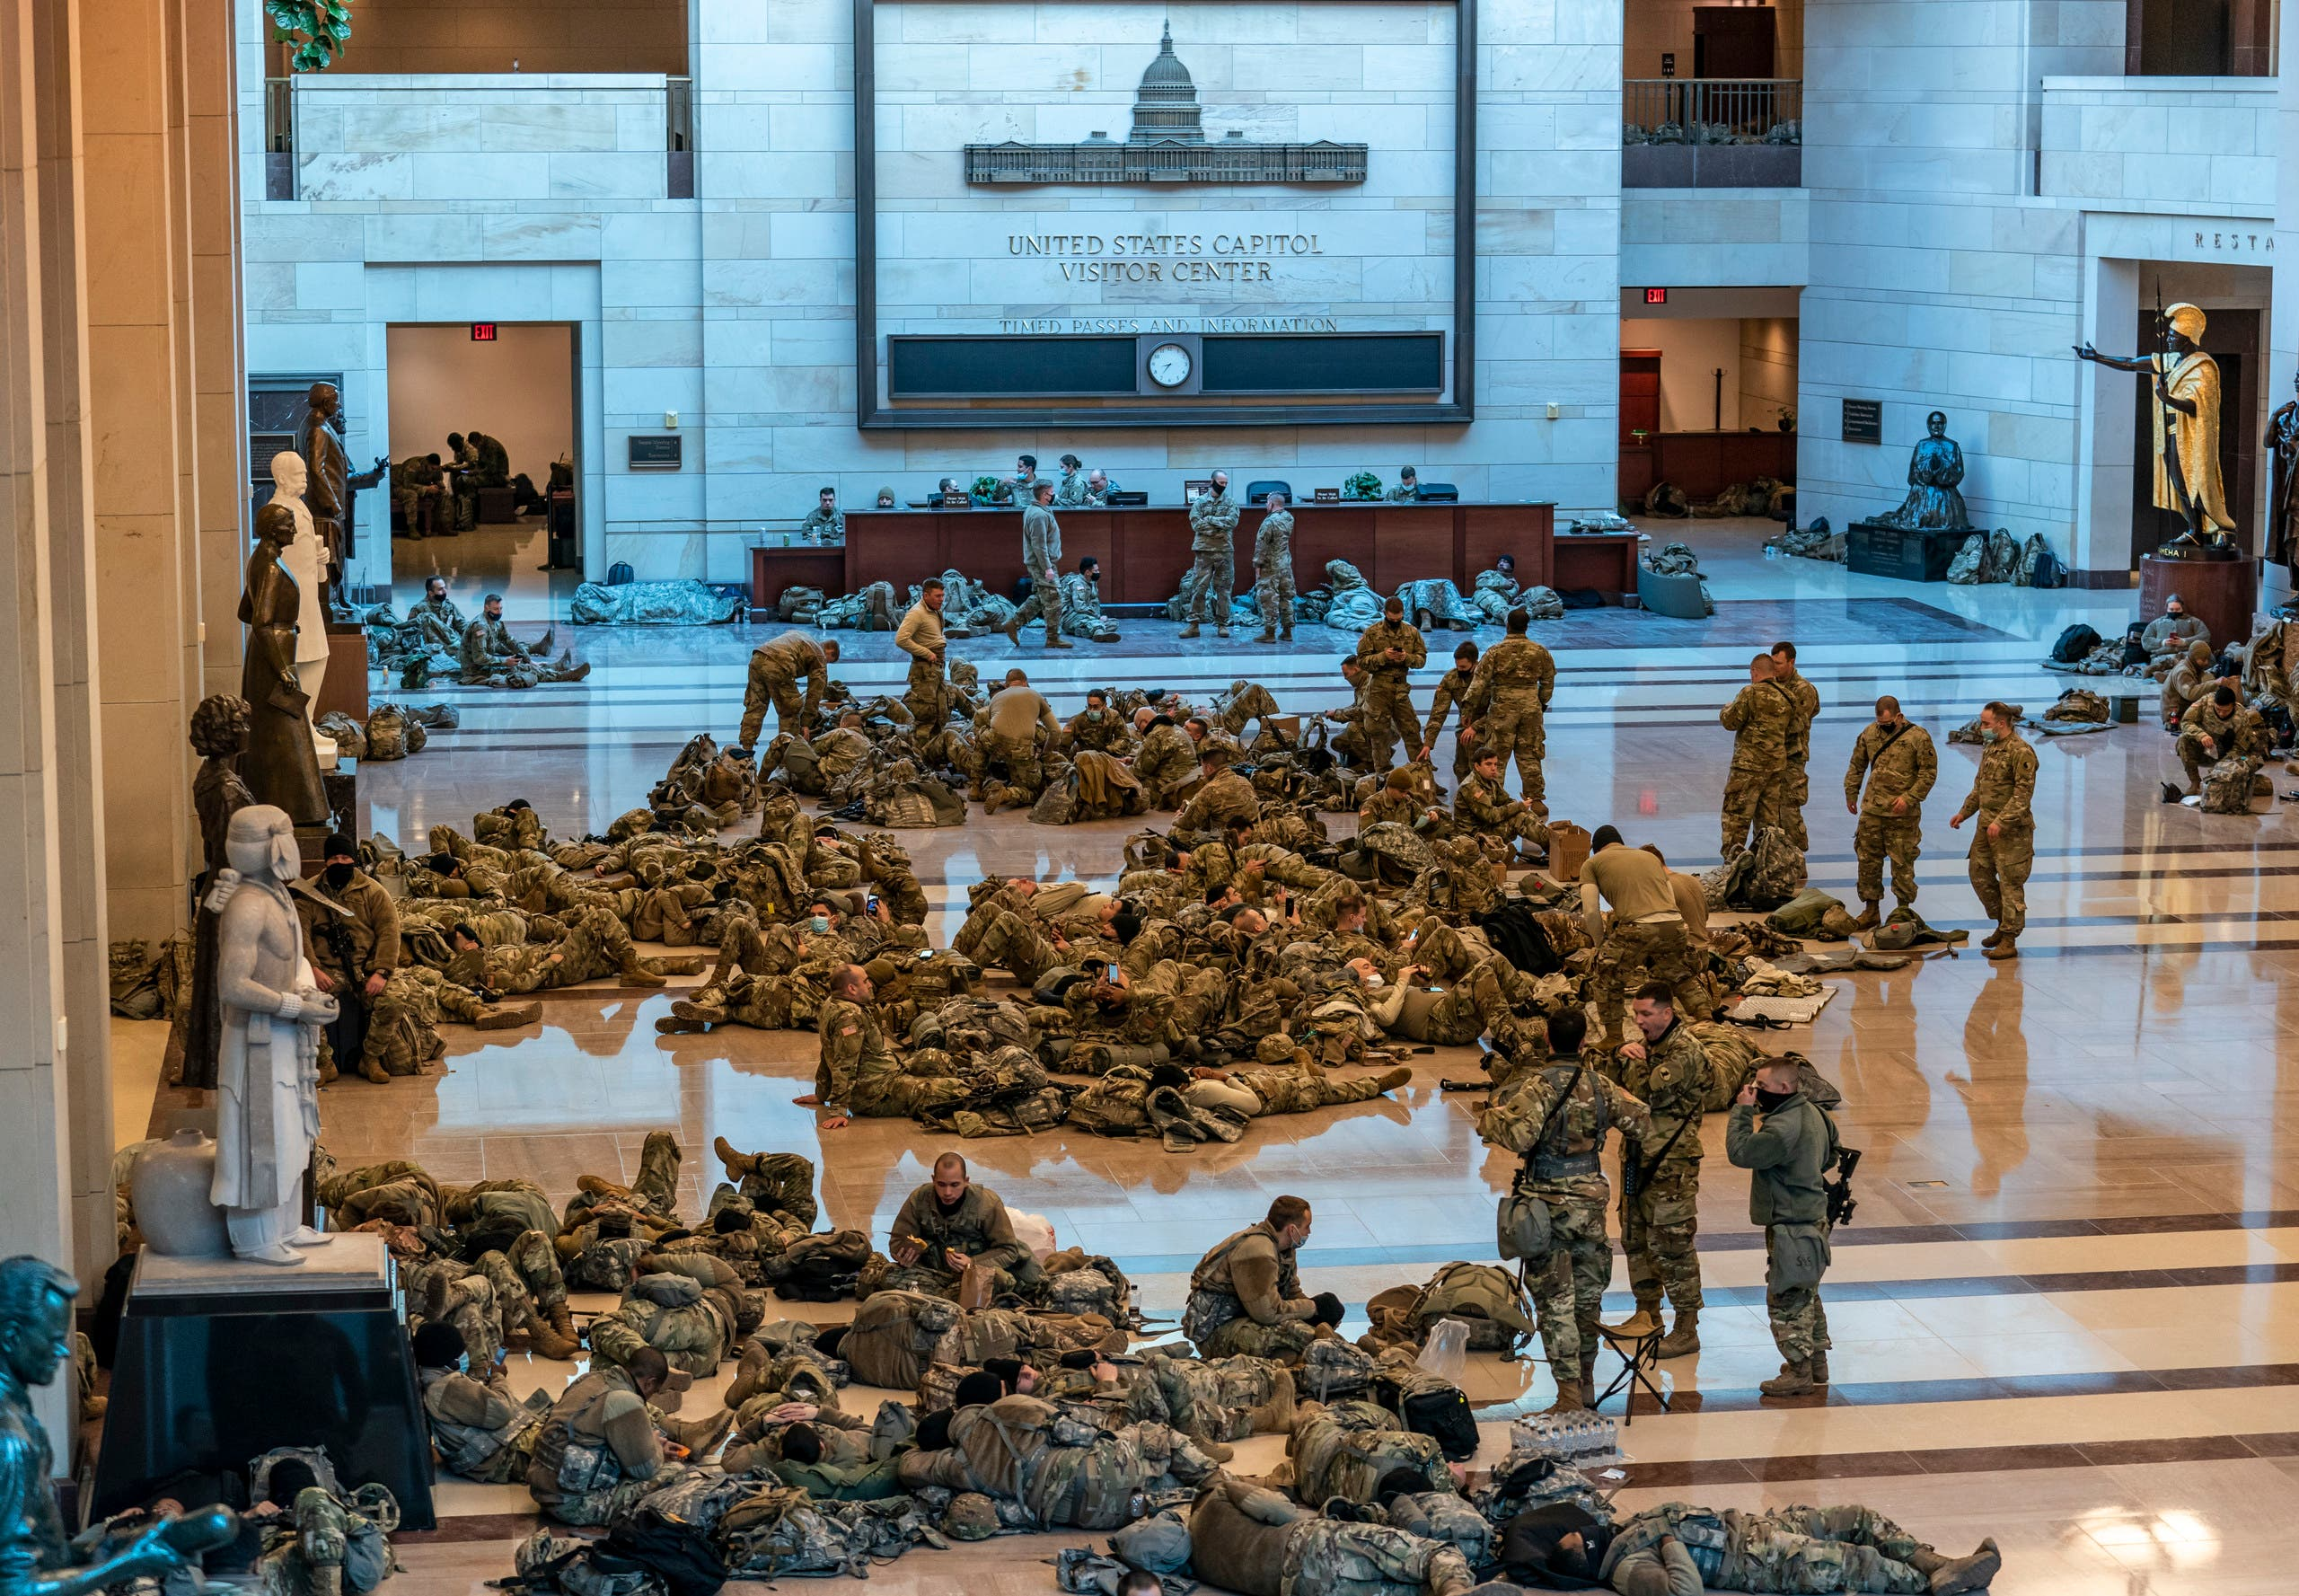 Hundreds of National Guard troops hold inside the Capitol Visitor's Center to reinforce security at the Capitol in Washington, Wednesday, Jan. 13, 2021. The House of Representatives is pursuing an article of impeachment against President Donald Trump. (AP)